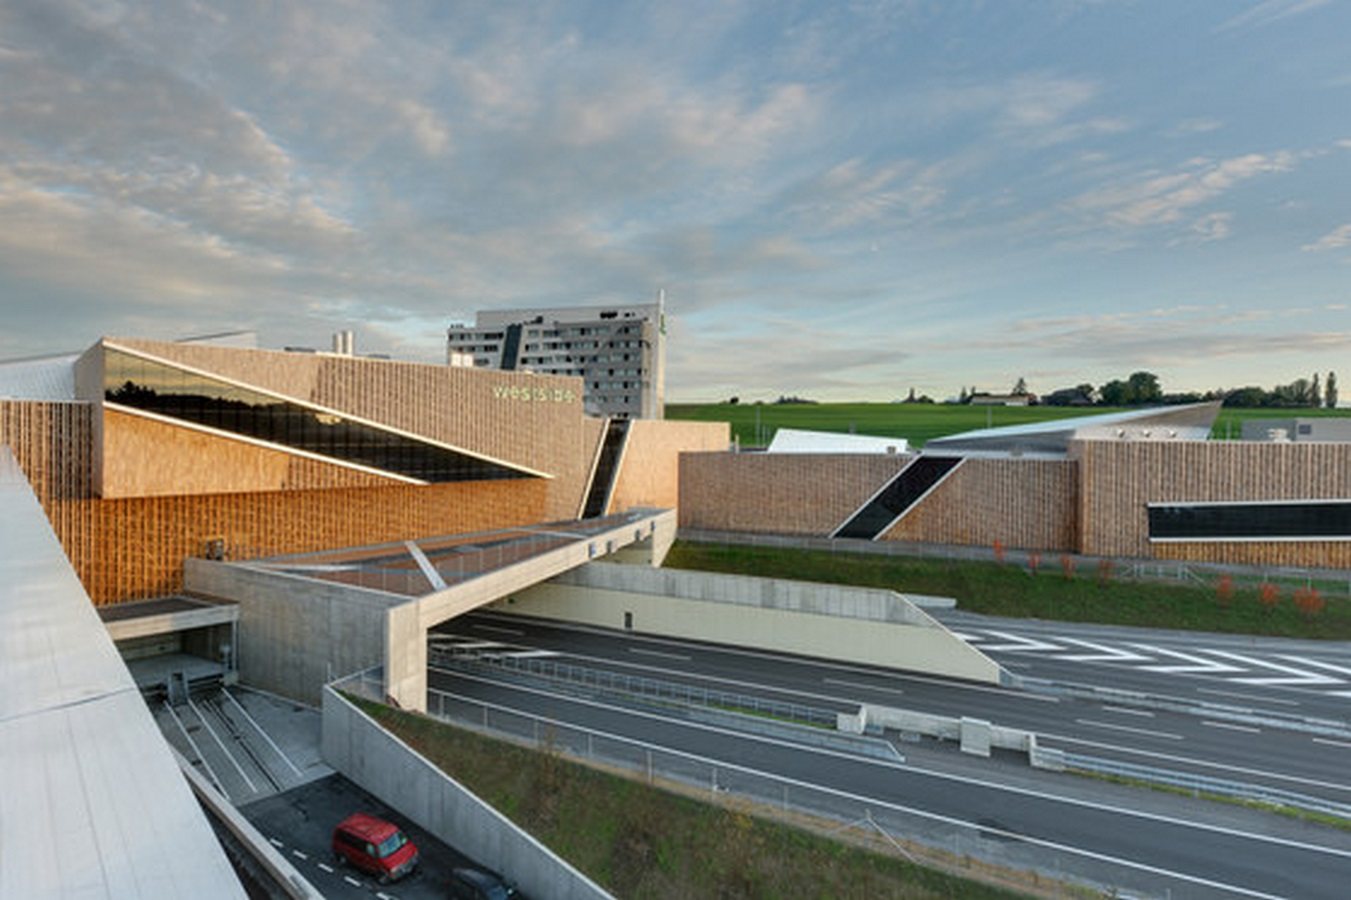 Westside Shopping and Leisure Centre by Daniel Libeskind: Unification of commerce, culture and leisure - Sheet2